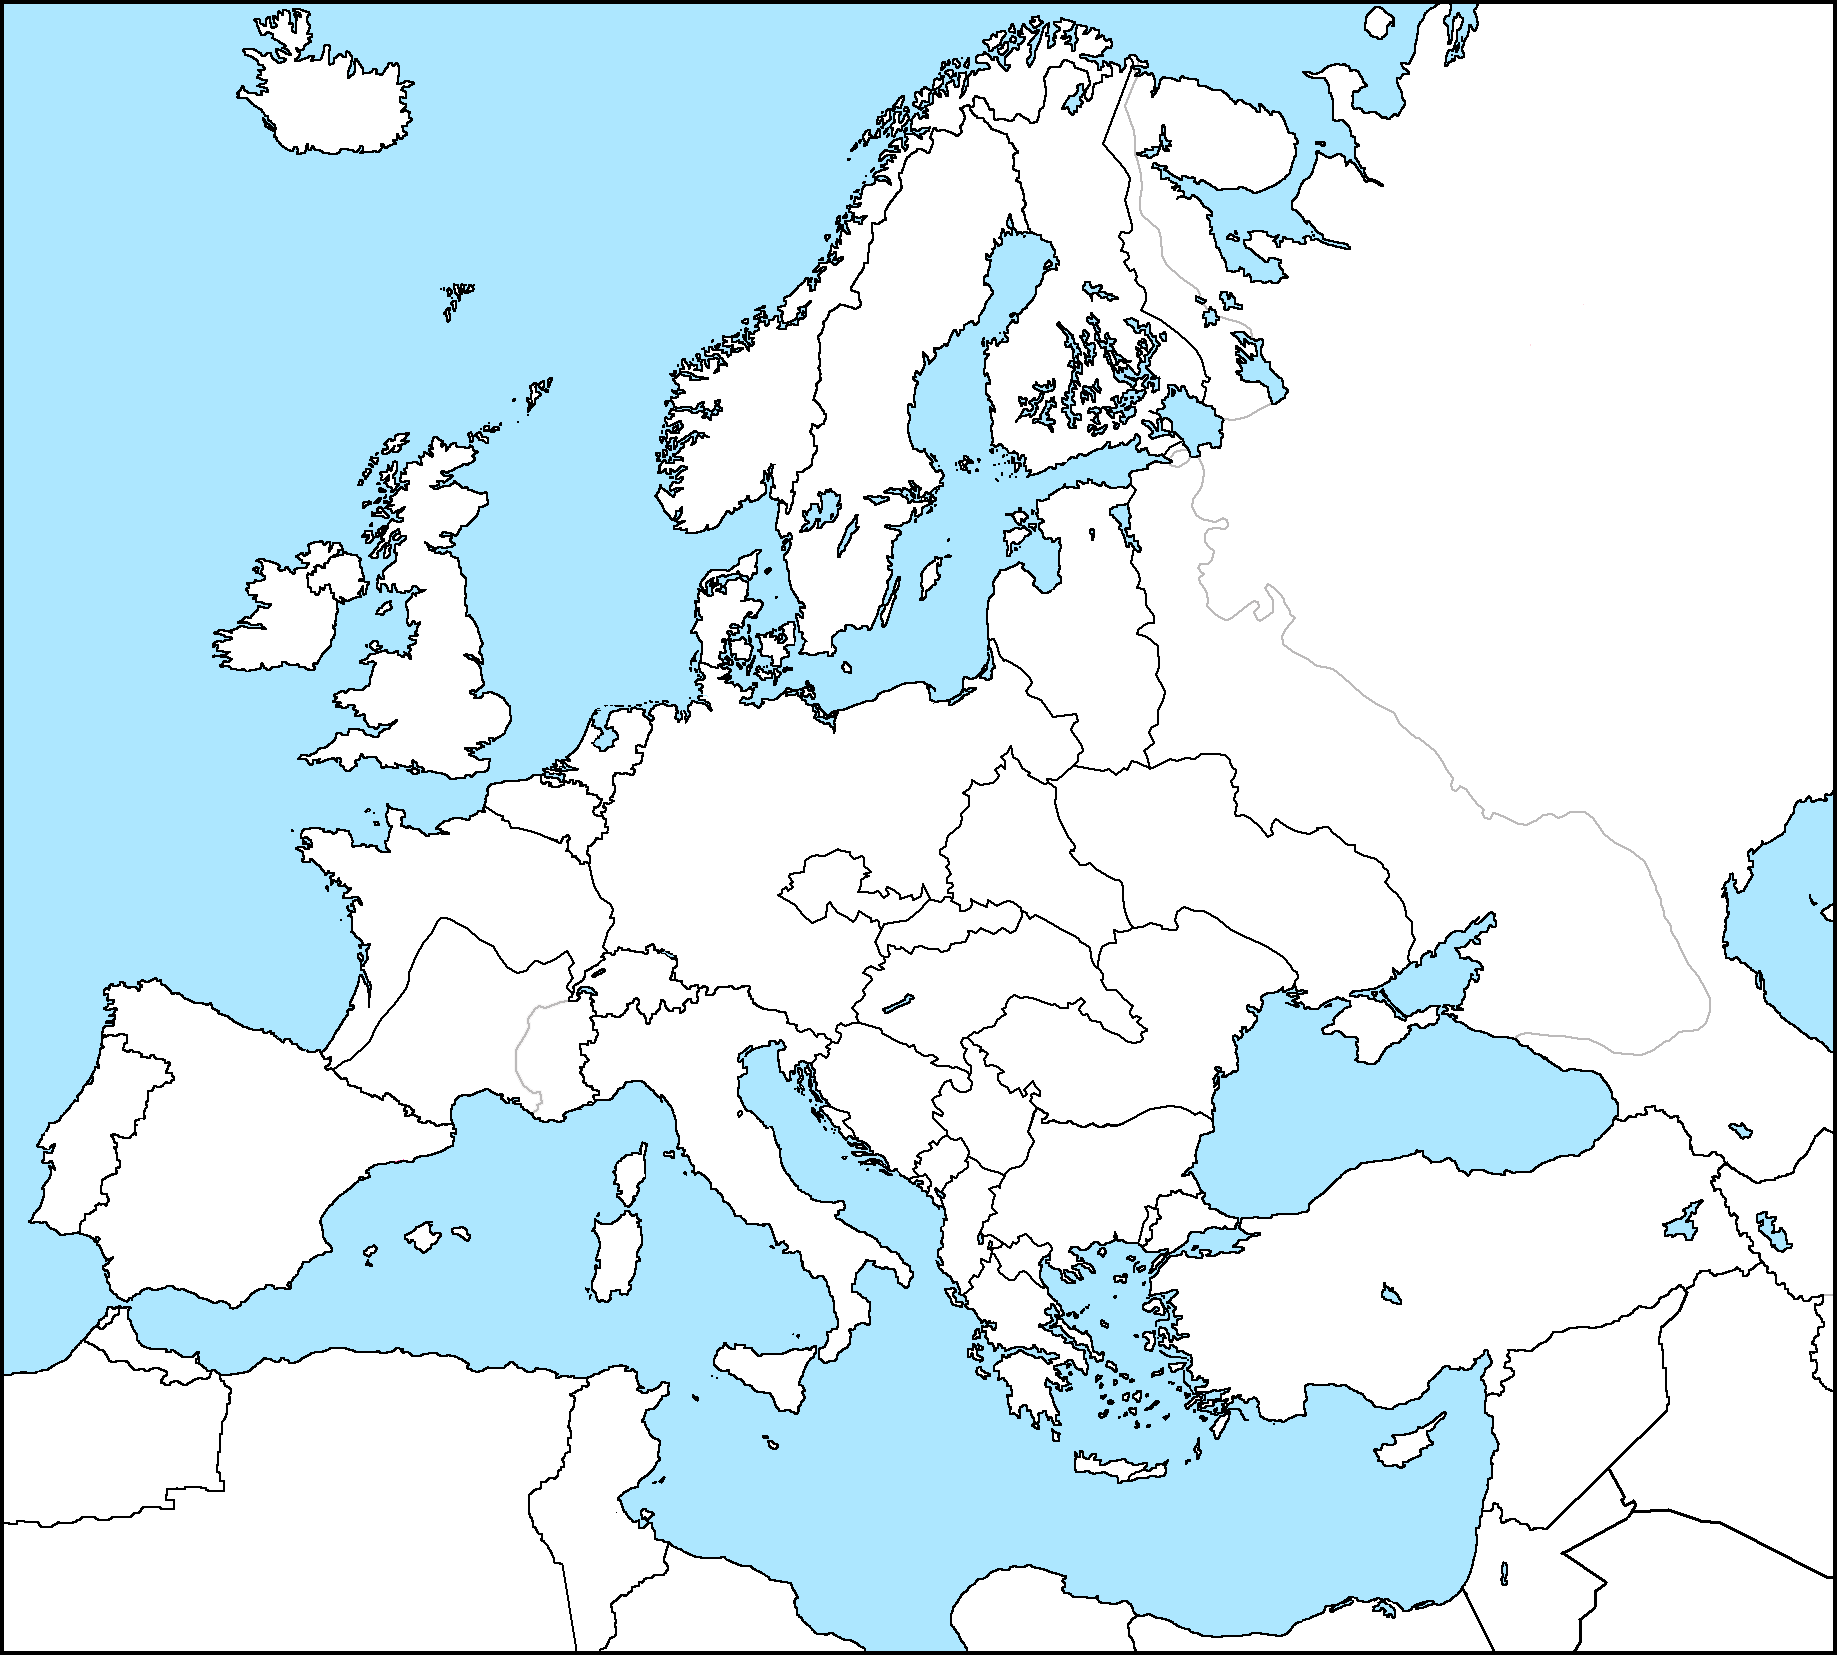 Mapping Europe By HarryM On DeviantArt - Europe political blank map